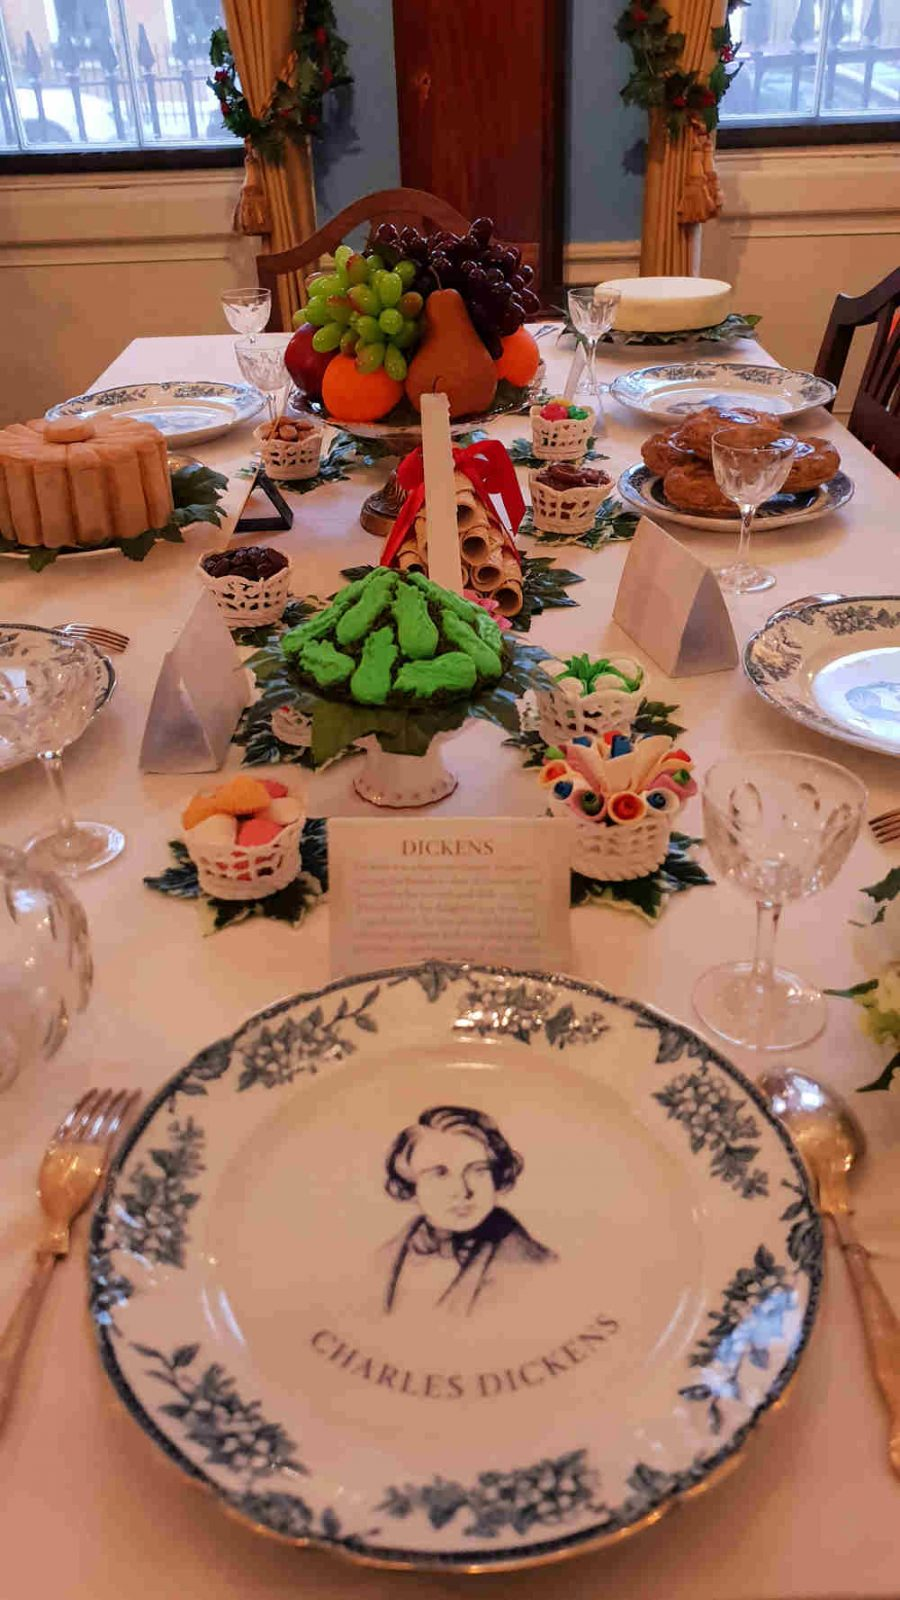 dickens museum food glorious food, dinner with dickens, Dickens museum christmas 2018, dickens museum food